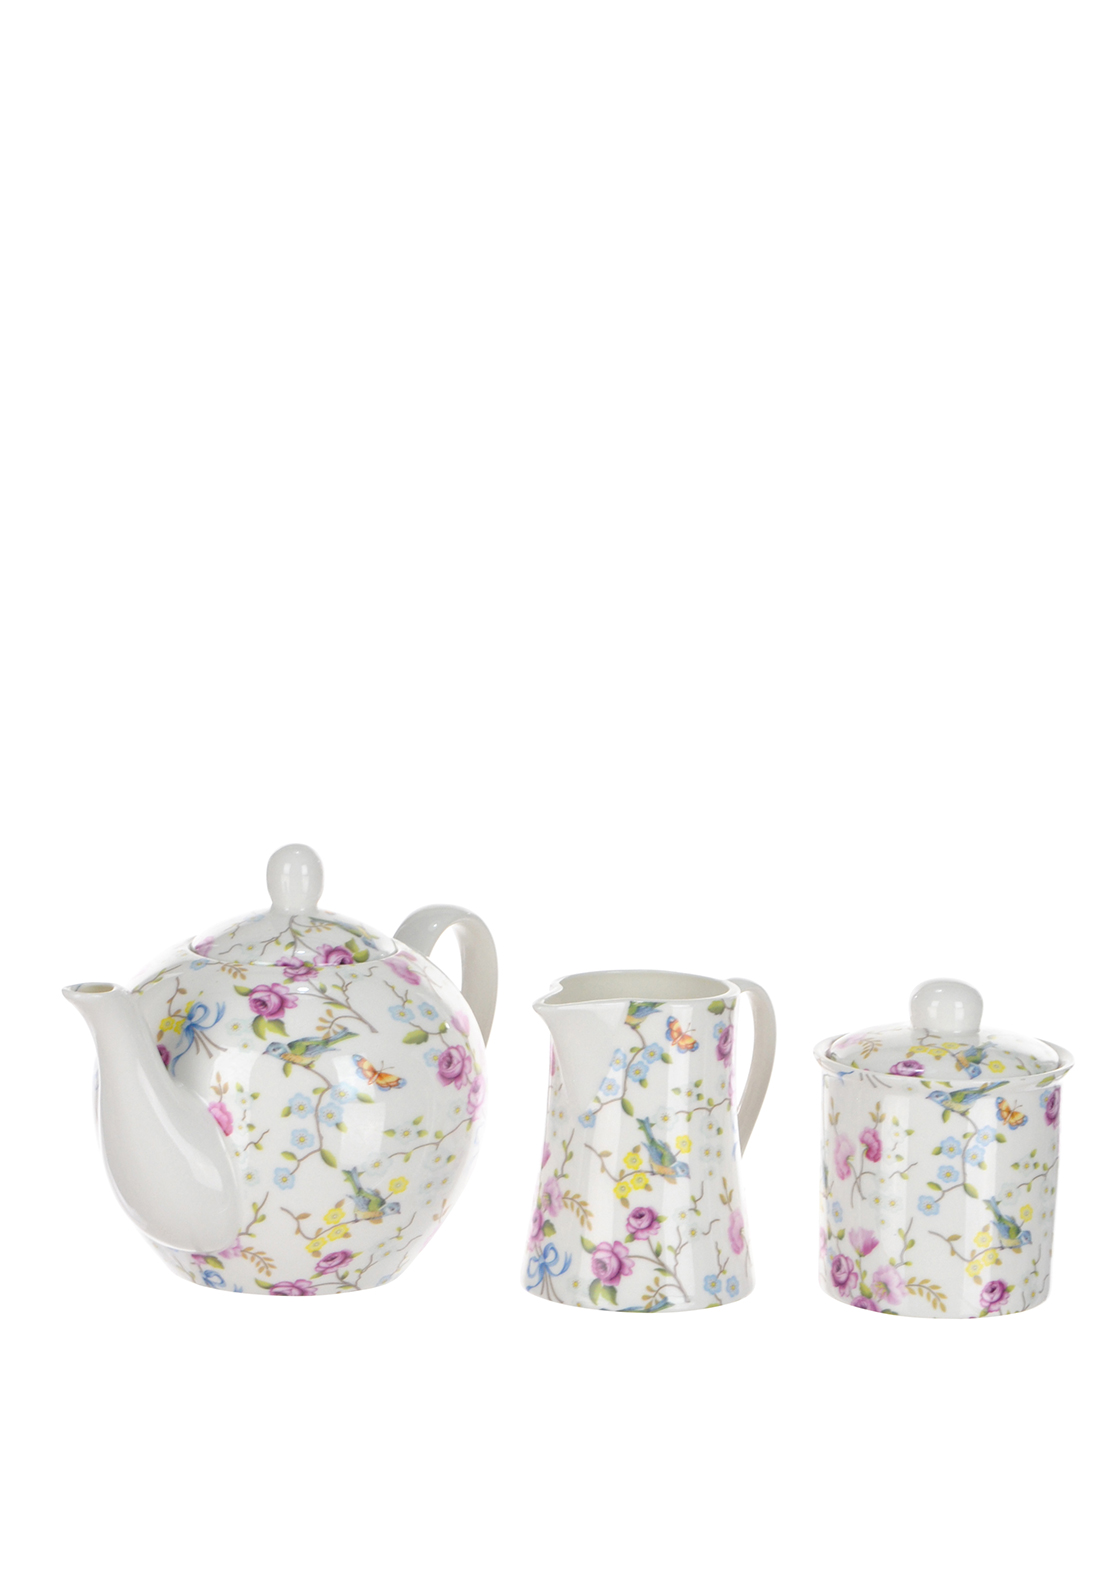 Shannonbridge Ireland Bird Blossom 3 Piece Tea Set